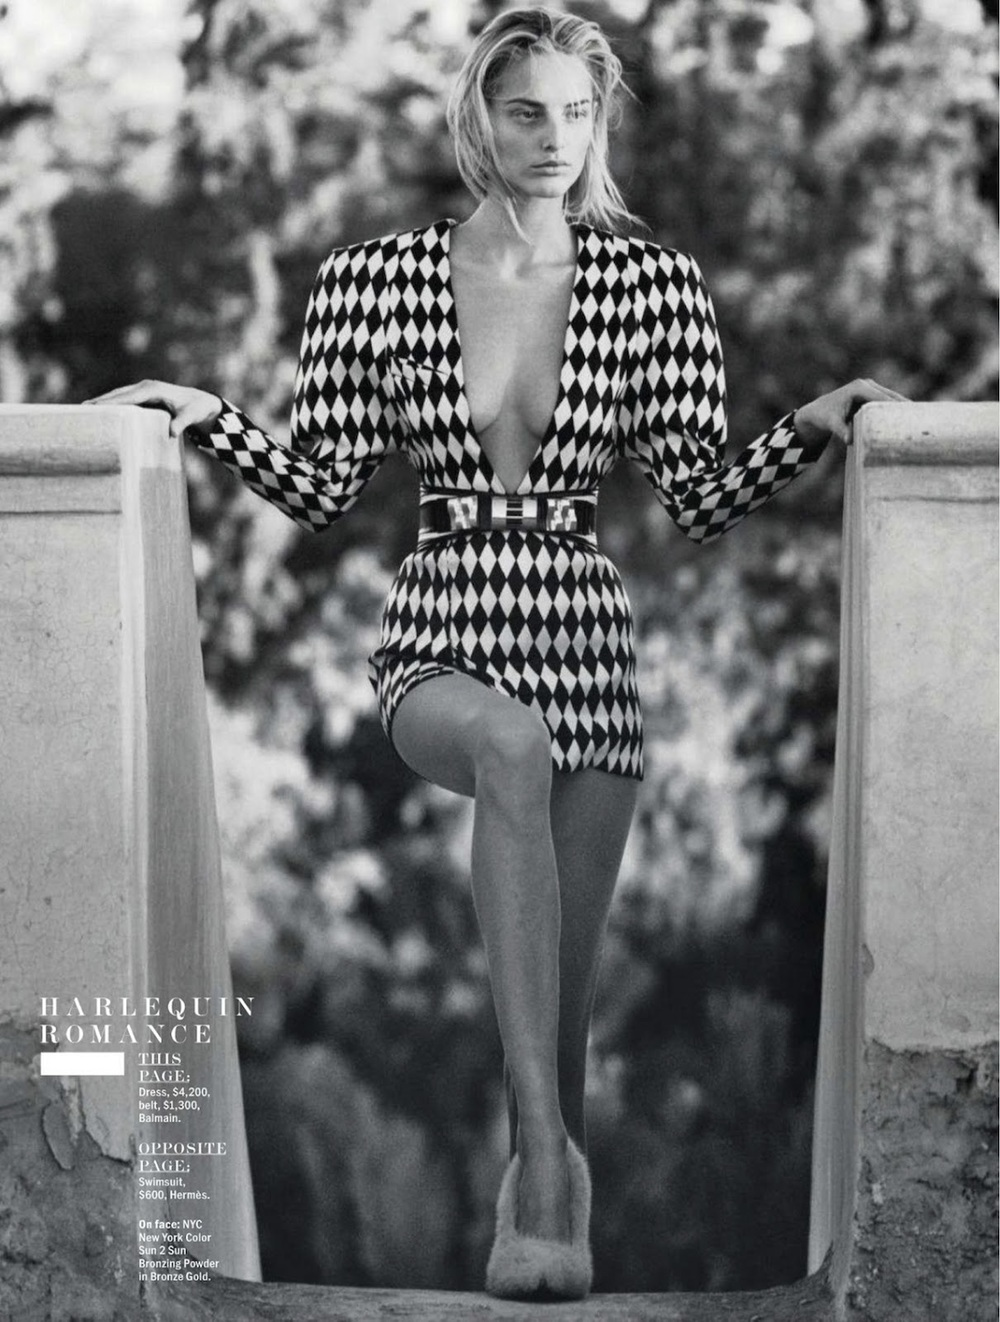 A scandalous Balmain look in the May issue of Marie Claire magazine